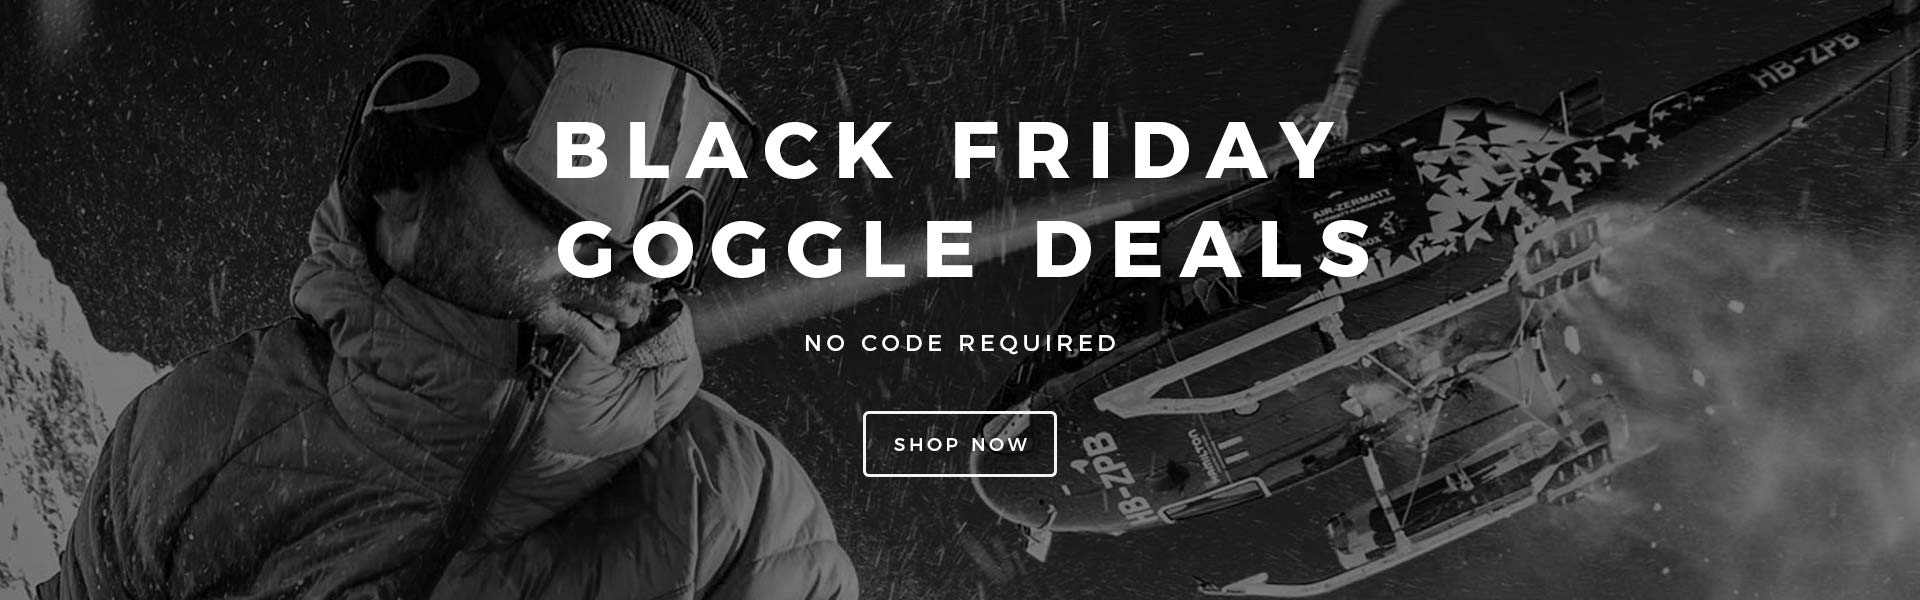 Black Friday Goggle Deals